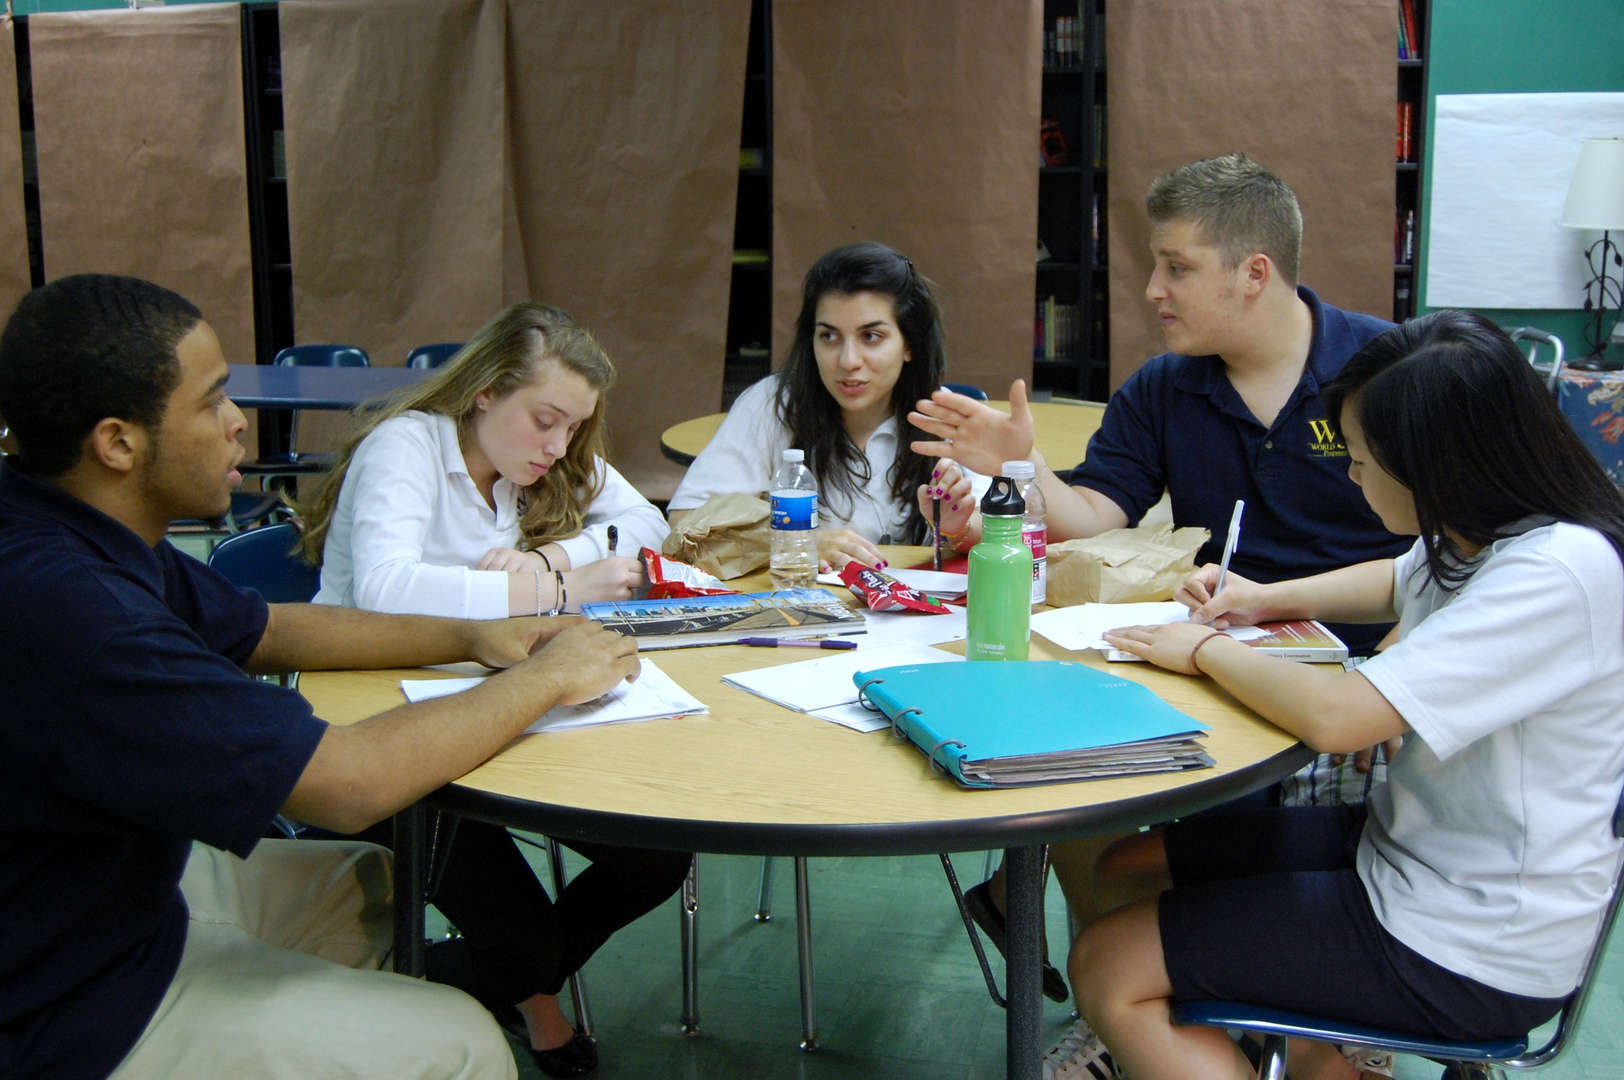 six students sitting at a round table studying